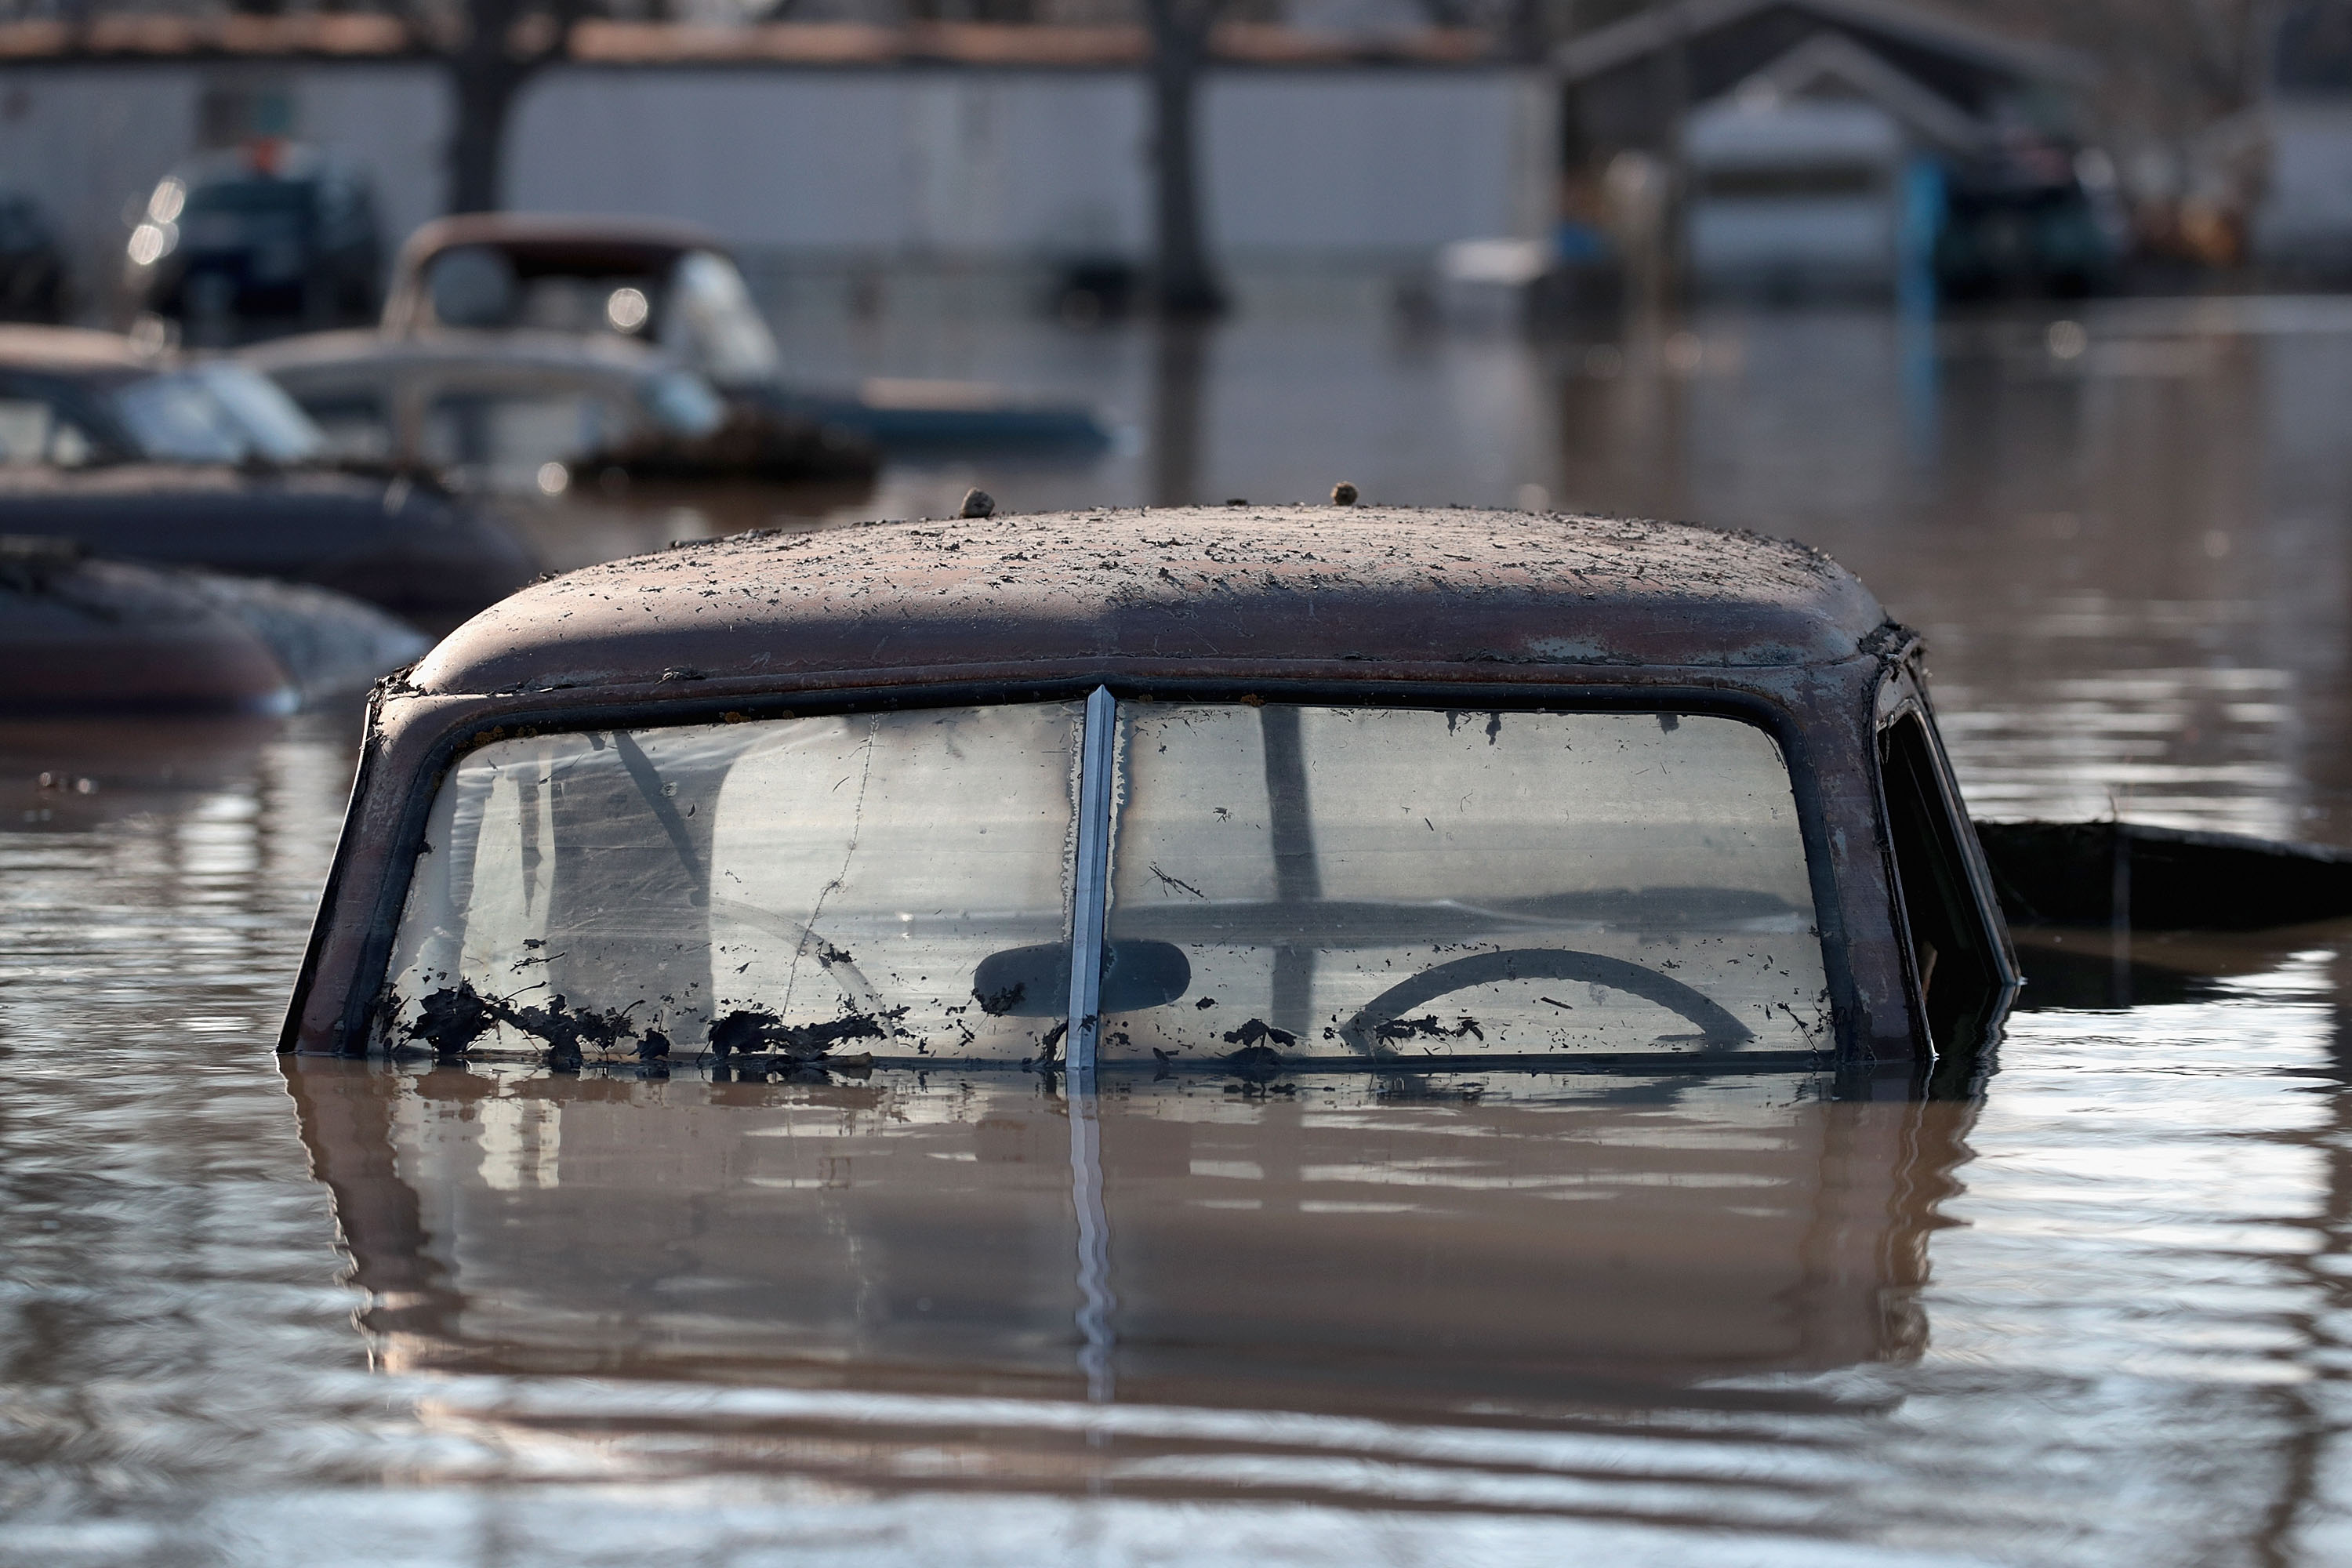 """HAMBURG, IOWA - MARCH 20:  A vintage car sits in flood water on March 20, 2019 in Hamburg, Iowa. Although flood water in the town has started to recede many homes and businesses remain surrounded by water. Several Midwest states are battling some of the worst flooding they have experienced in decades as rain and snow melt from the recent """"bomb cyclone"""" has inundated rivers and streams. At least three deaths have been linked to the flooding. (Photo by Scott Olson/Getty Images)"""